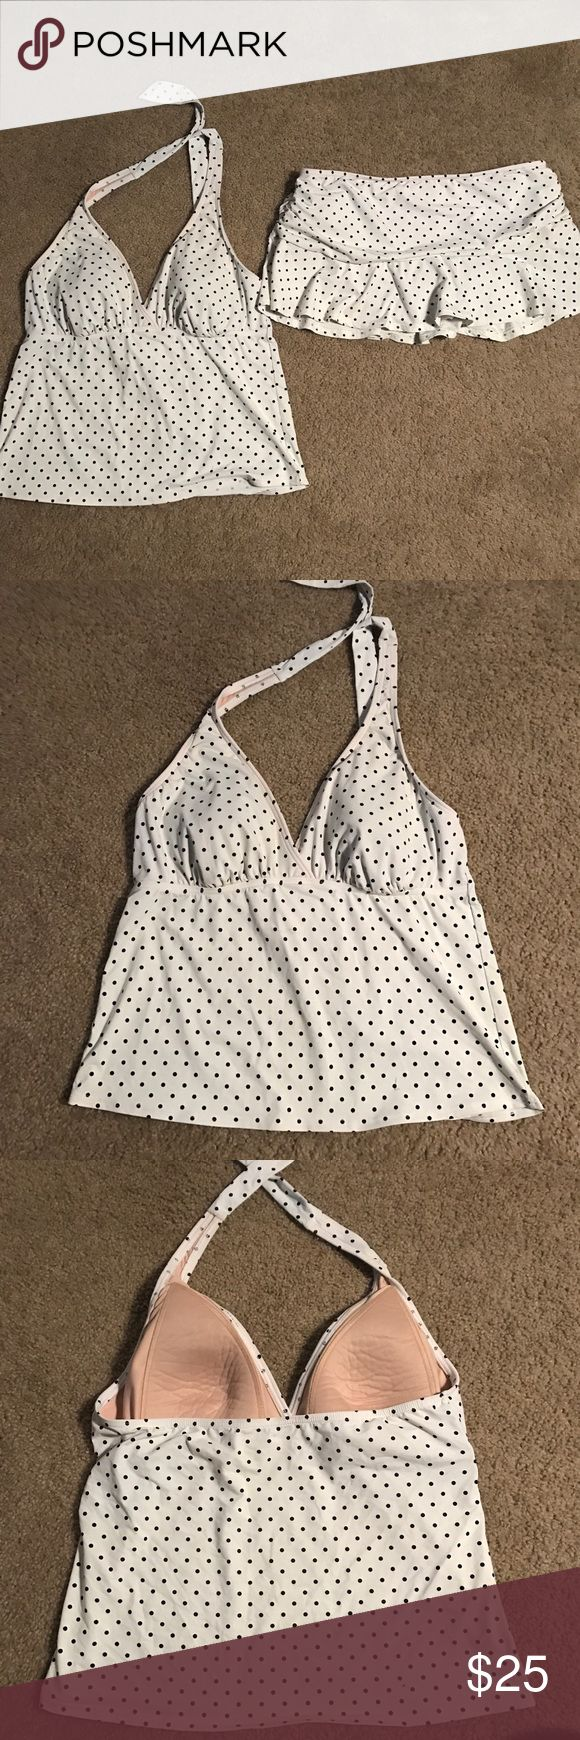 Land's End white and black polka dot swim suit Land's end black and white polka dot swimsuit. Tankini style. Bottoms are a skirt style bottom. Perfect condition, no flaws. Comment if you have questions! :) Lands' End Swim